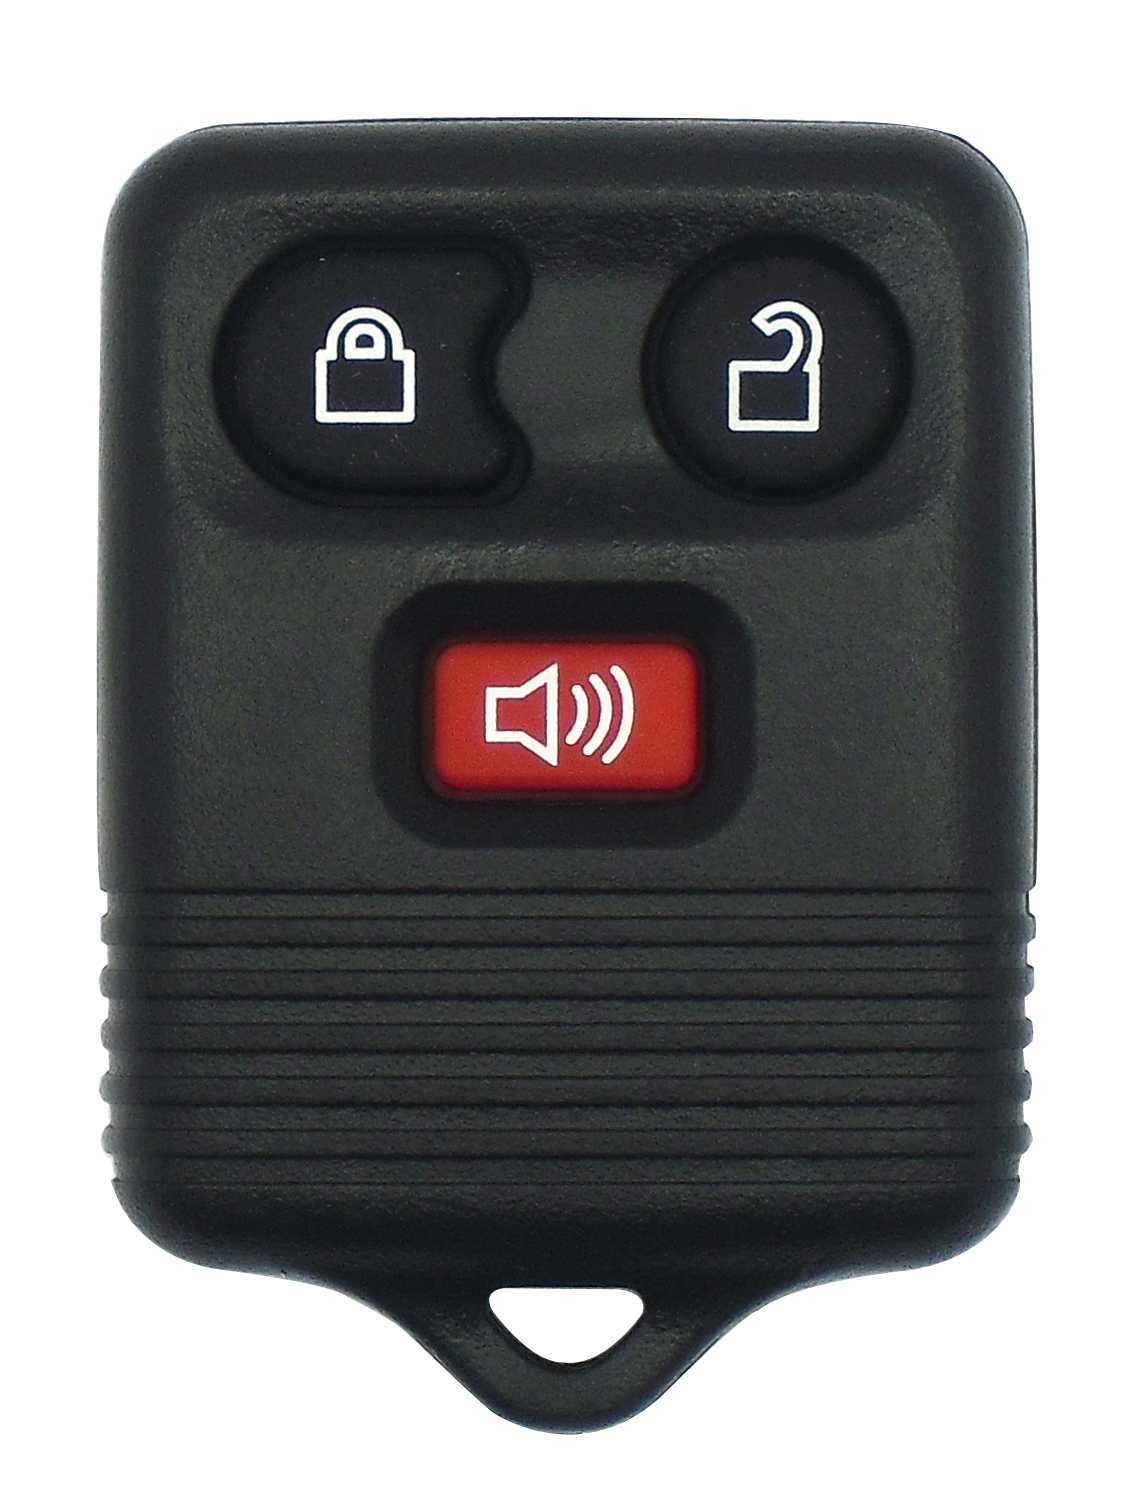 New Keyless Entry Remote For Ford, Lincoln, Mazda, and Mercury Vehicles